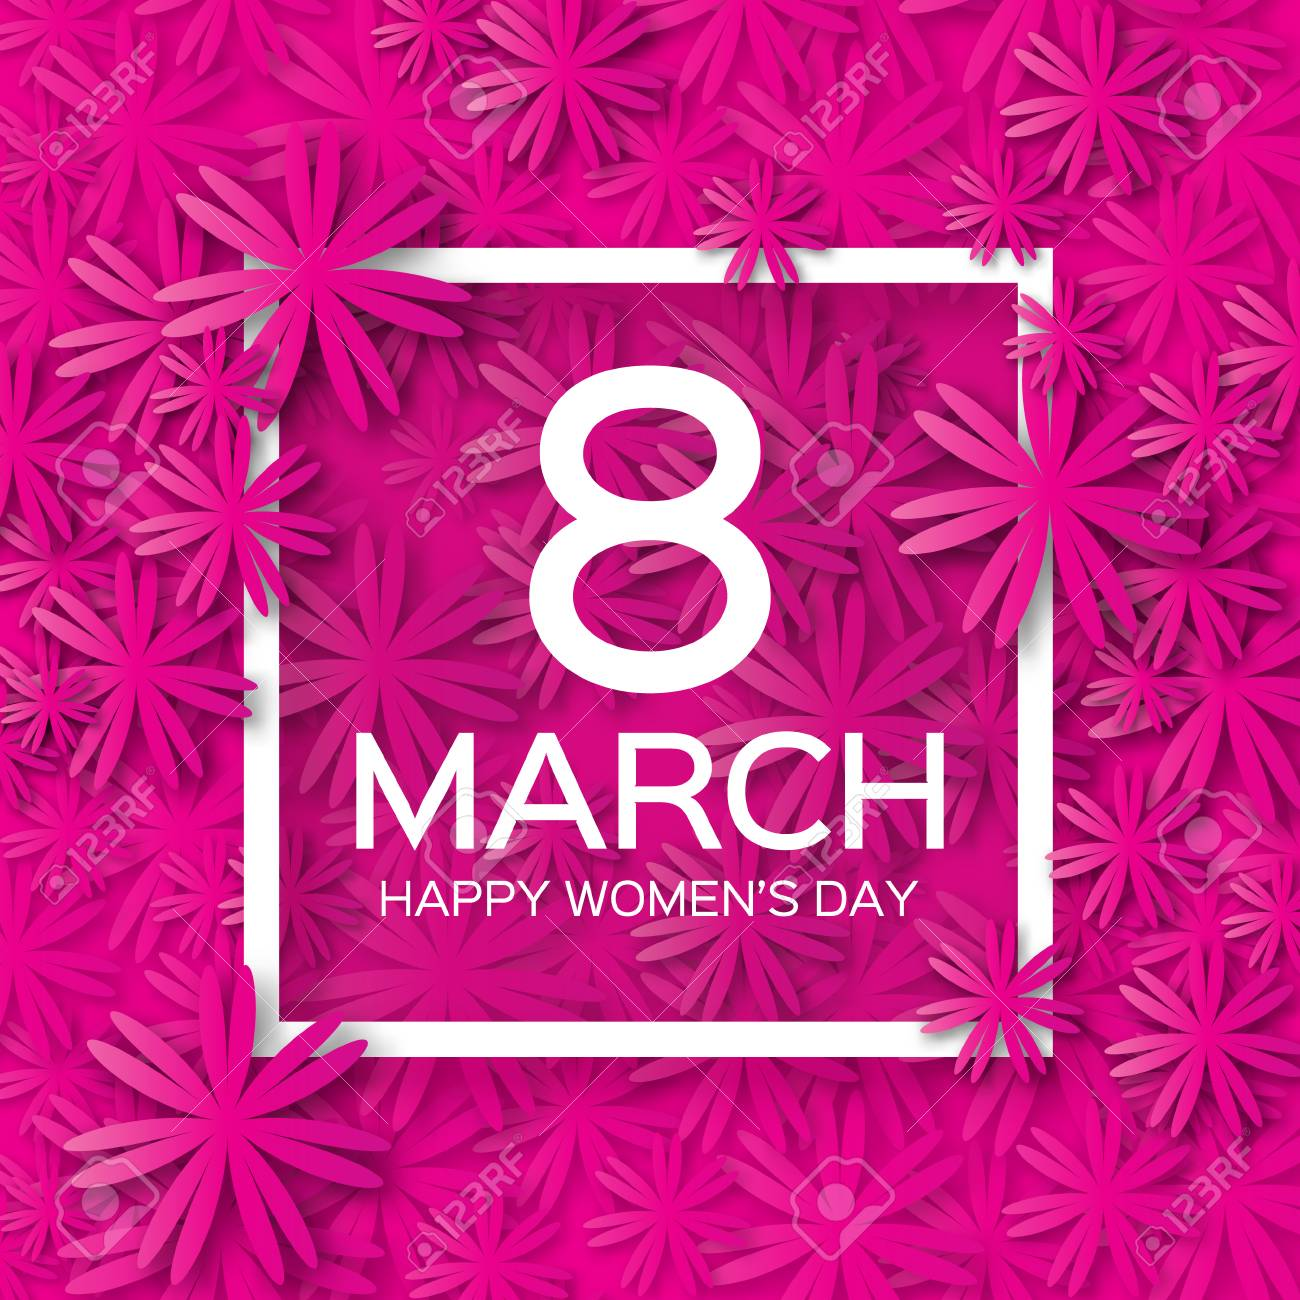 Abstract Pink Floral Greeting card - International Happy Women's Day - 8 March holiday background with paper cut Frame Flowers. Trendy Design Template. Vector illustration. - 52885956